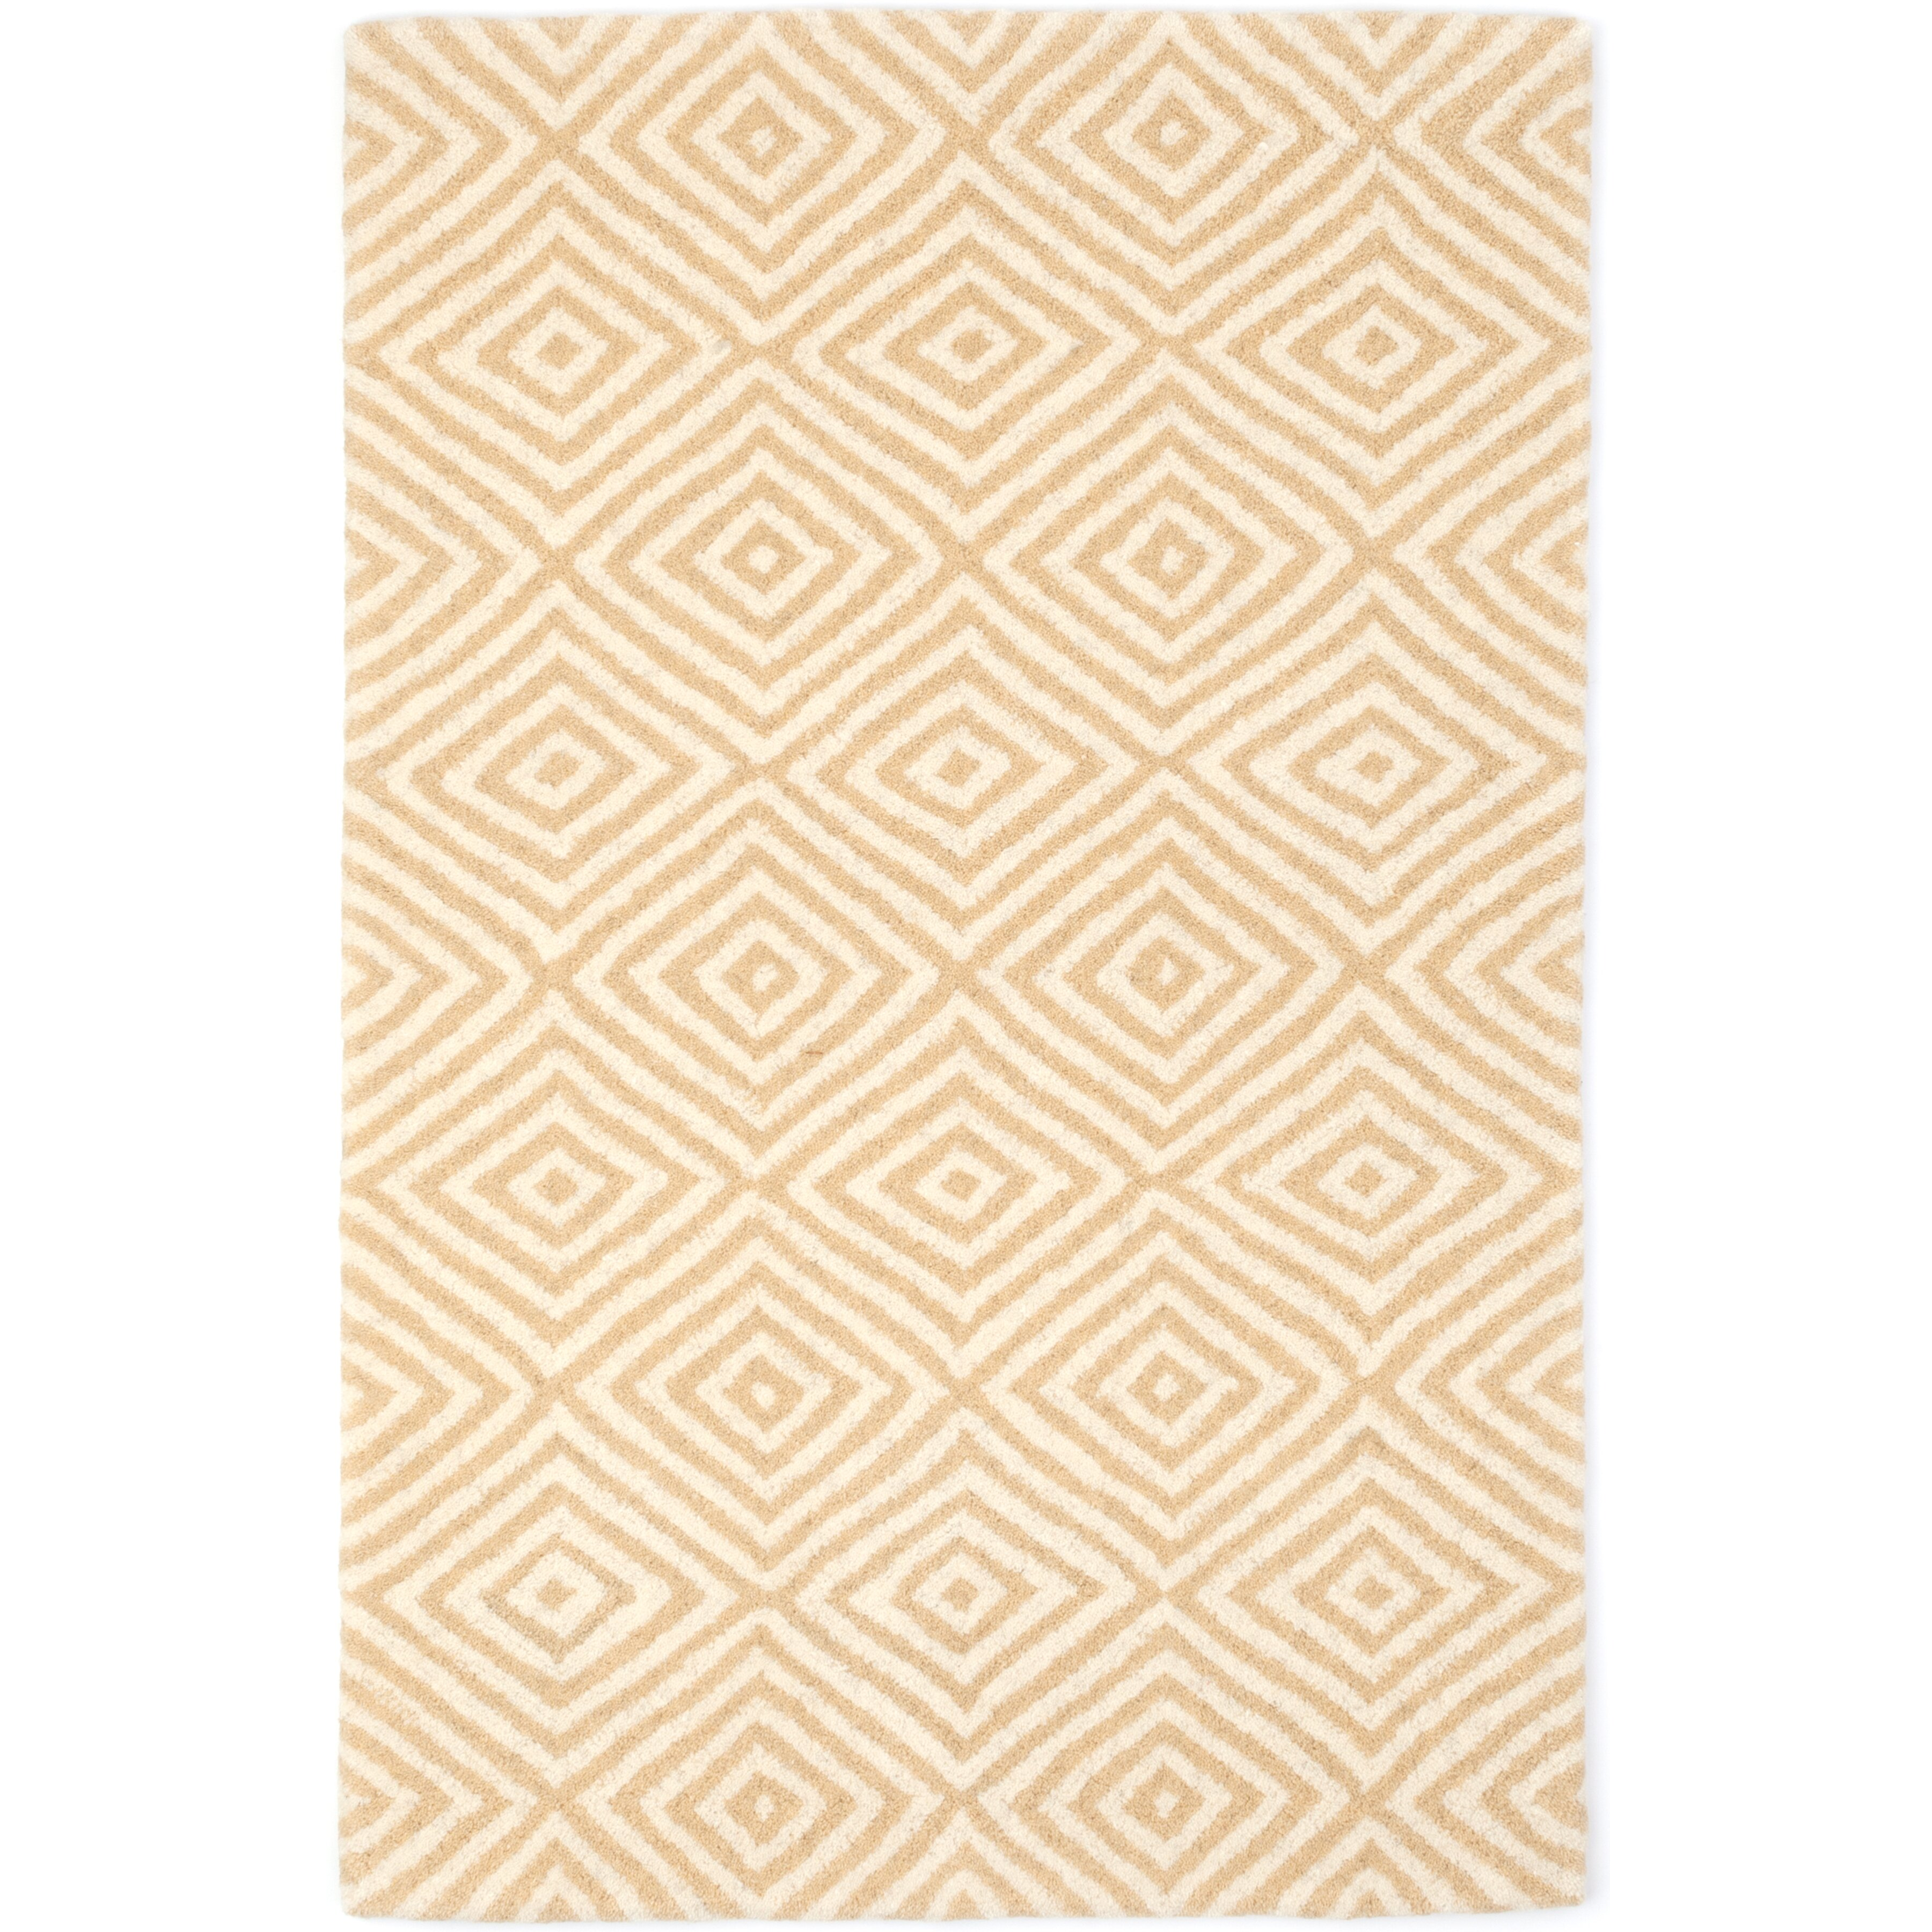 Dash and albert rugs tufted beige area rug wayfair for Dash and albert wool rugs